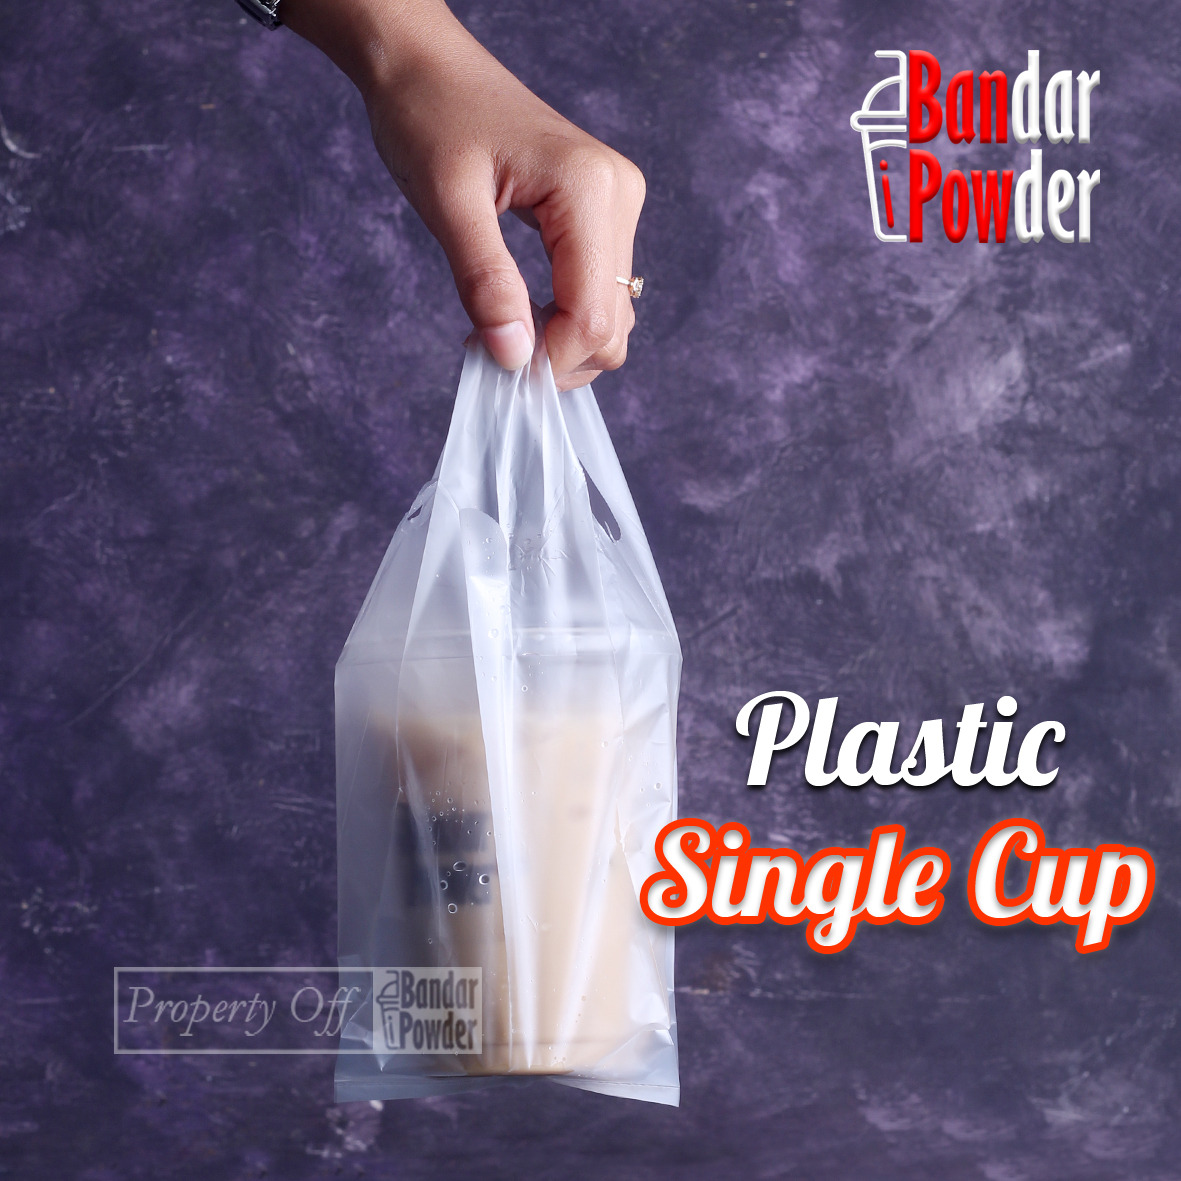 Plastik Take Away Double Cup Kemasan Kresek Lucu